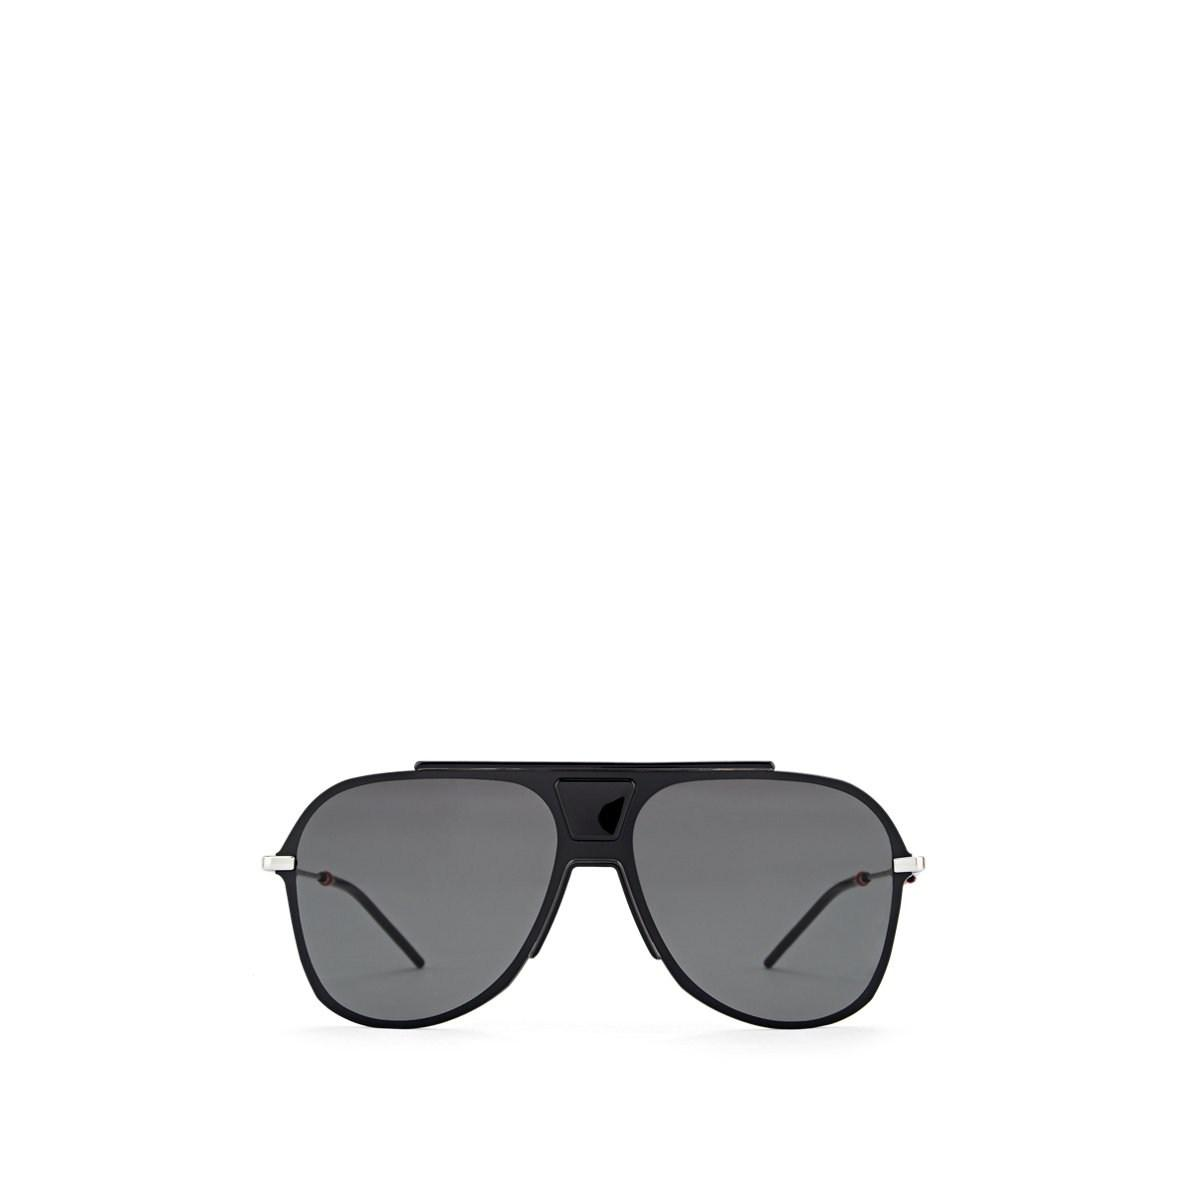 789bf606f95 Dior Homme dior0224s Sunglasses in Black for Men - Lyst